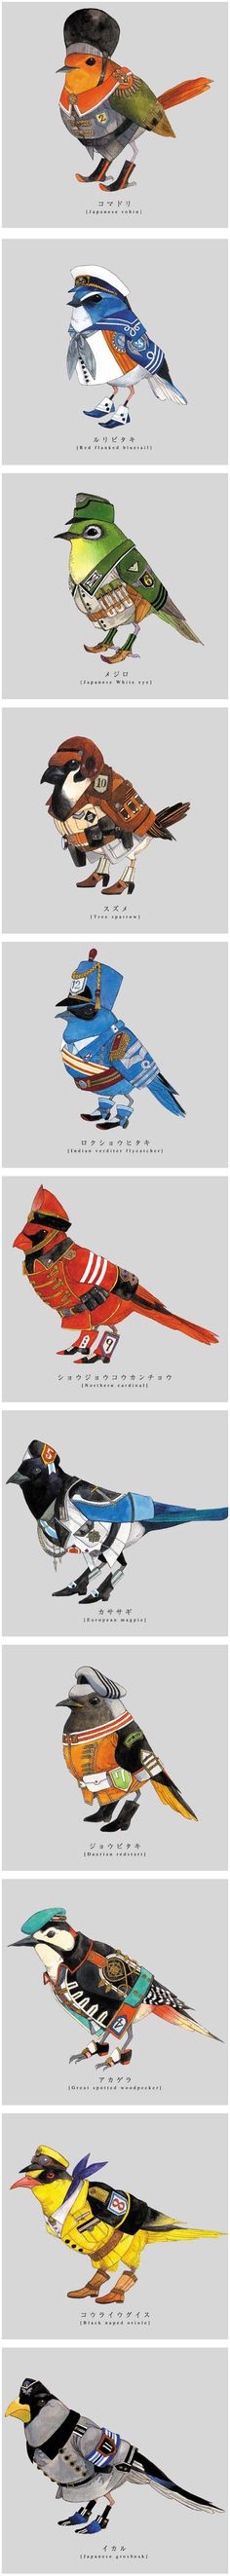 """Torigun"", birds dressed in military uniforms by Japanese artist Sato"